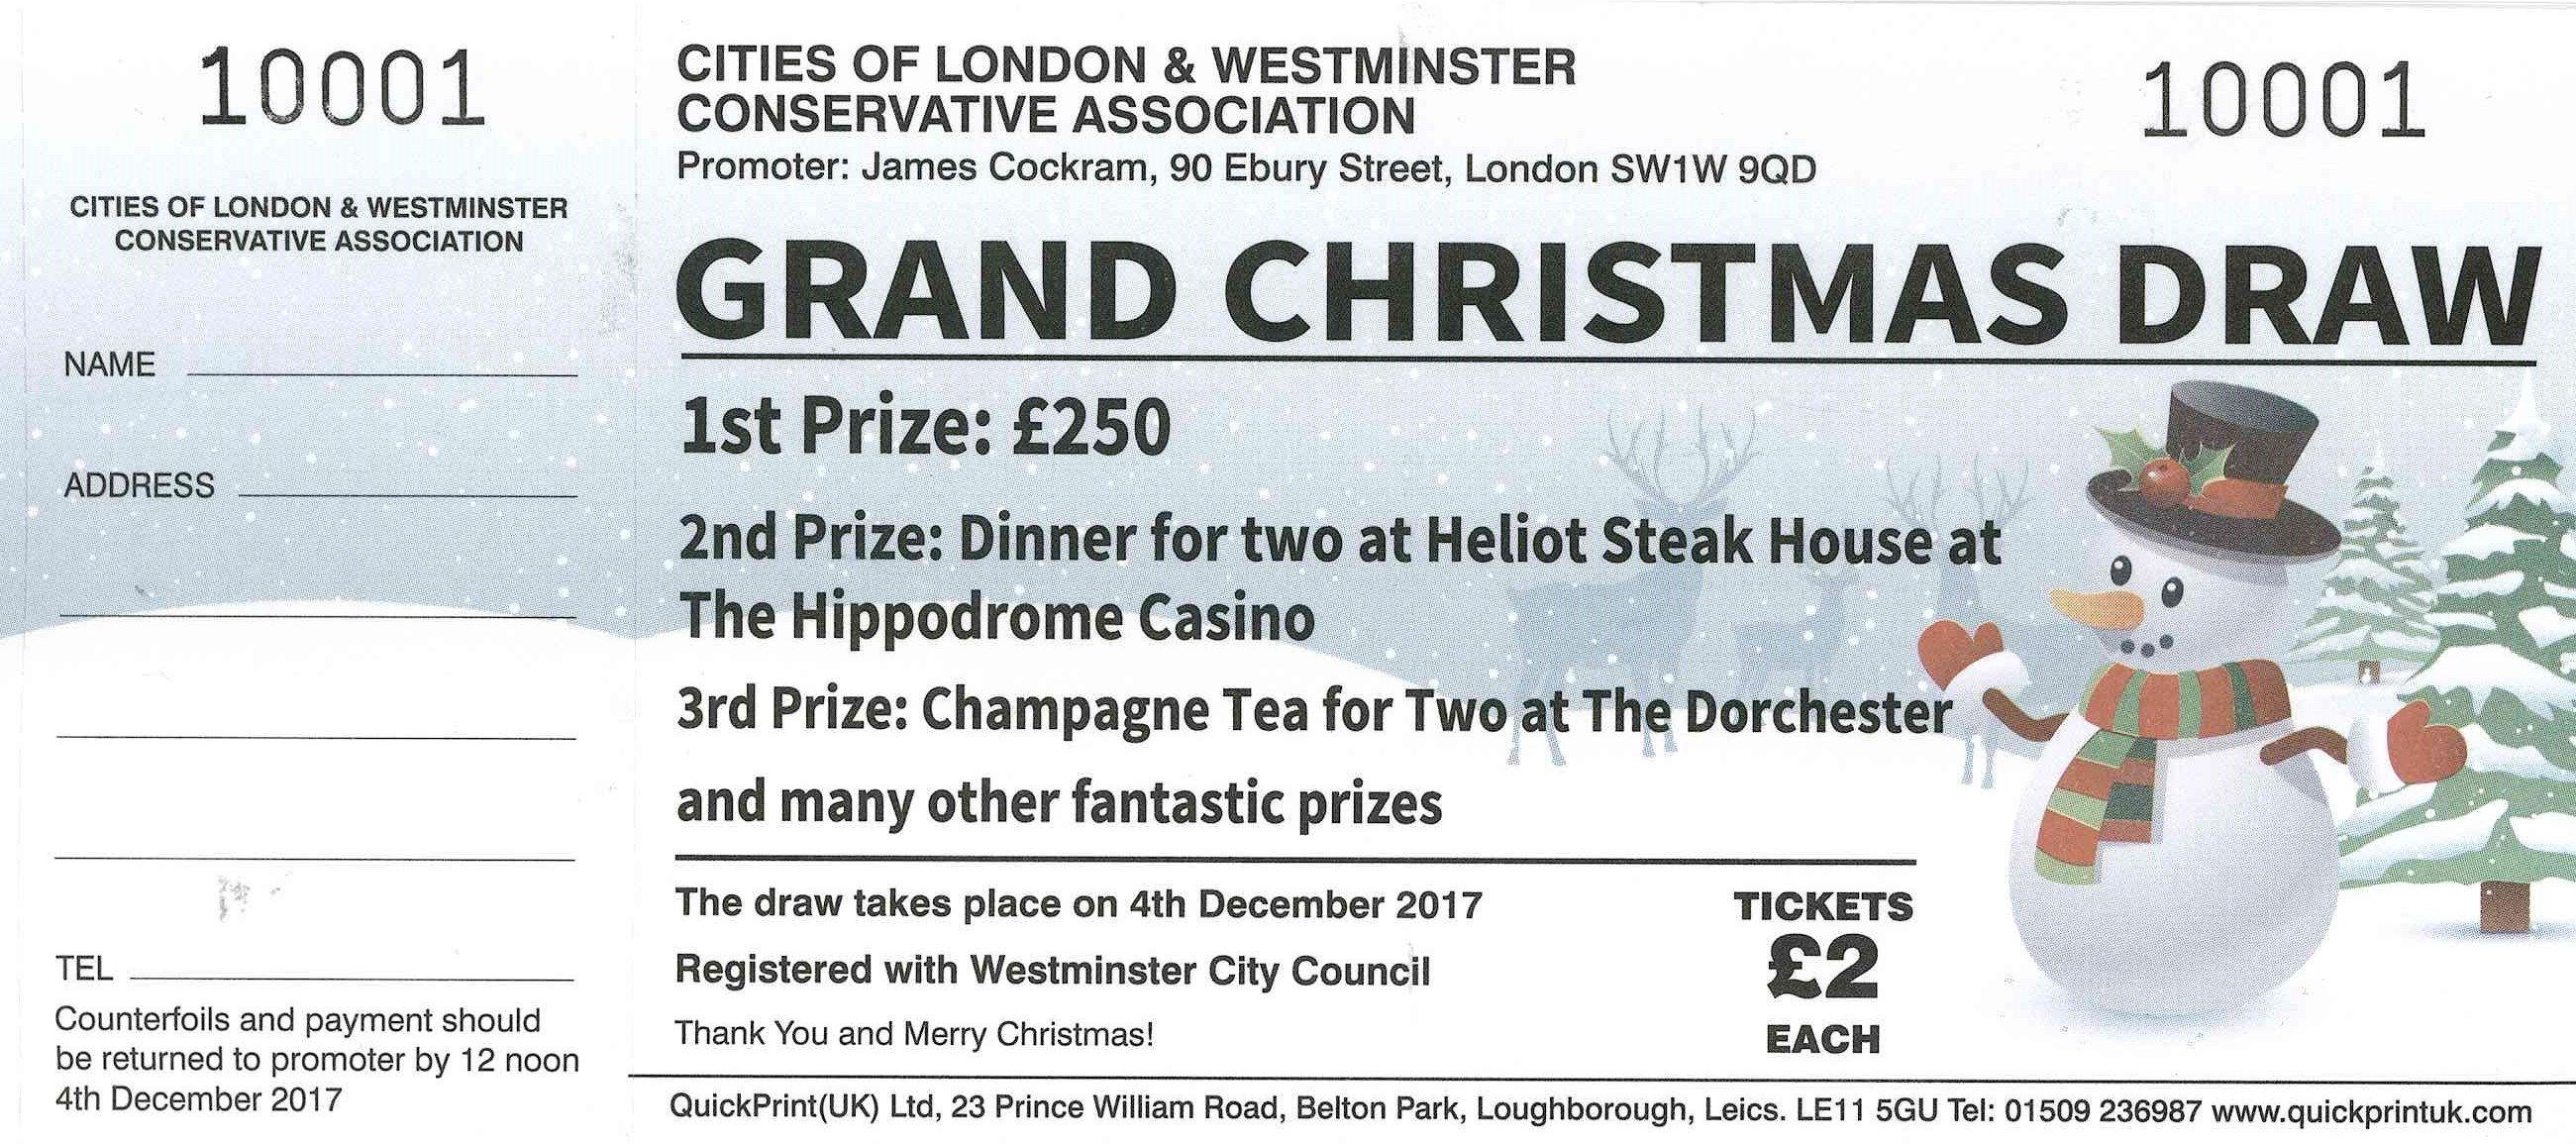 CLWCA Grand Christmas Draw | Cities of London & Westminster